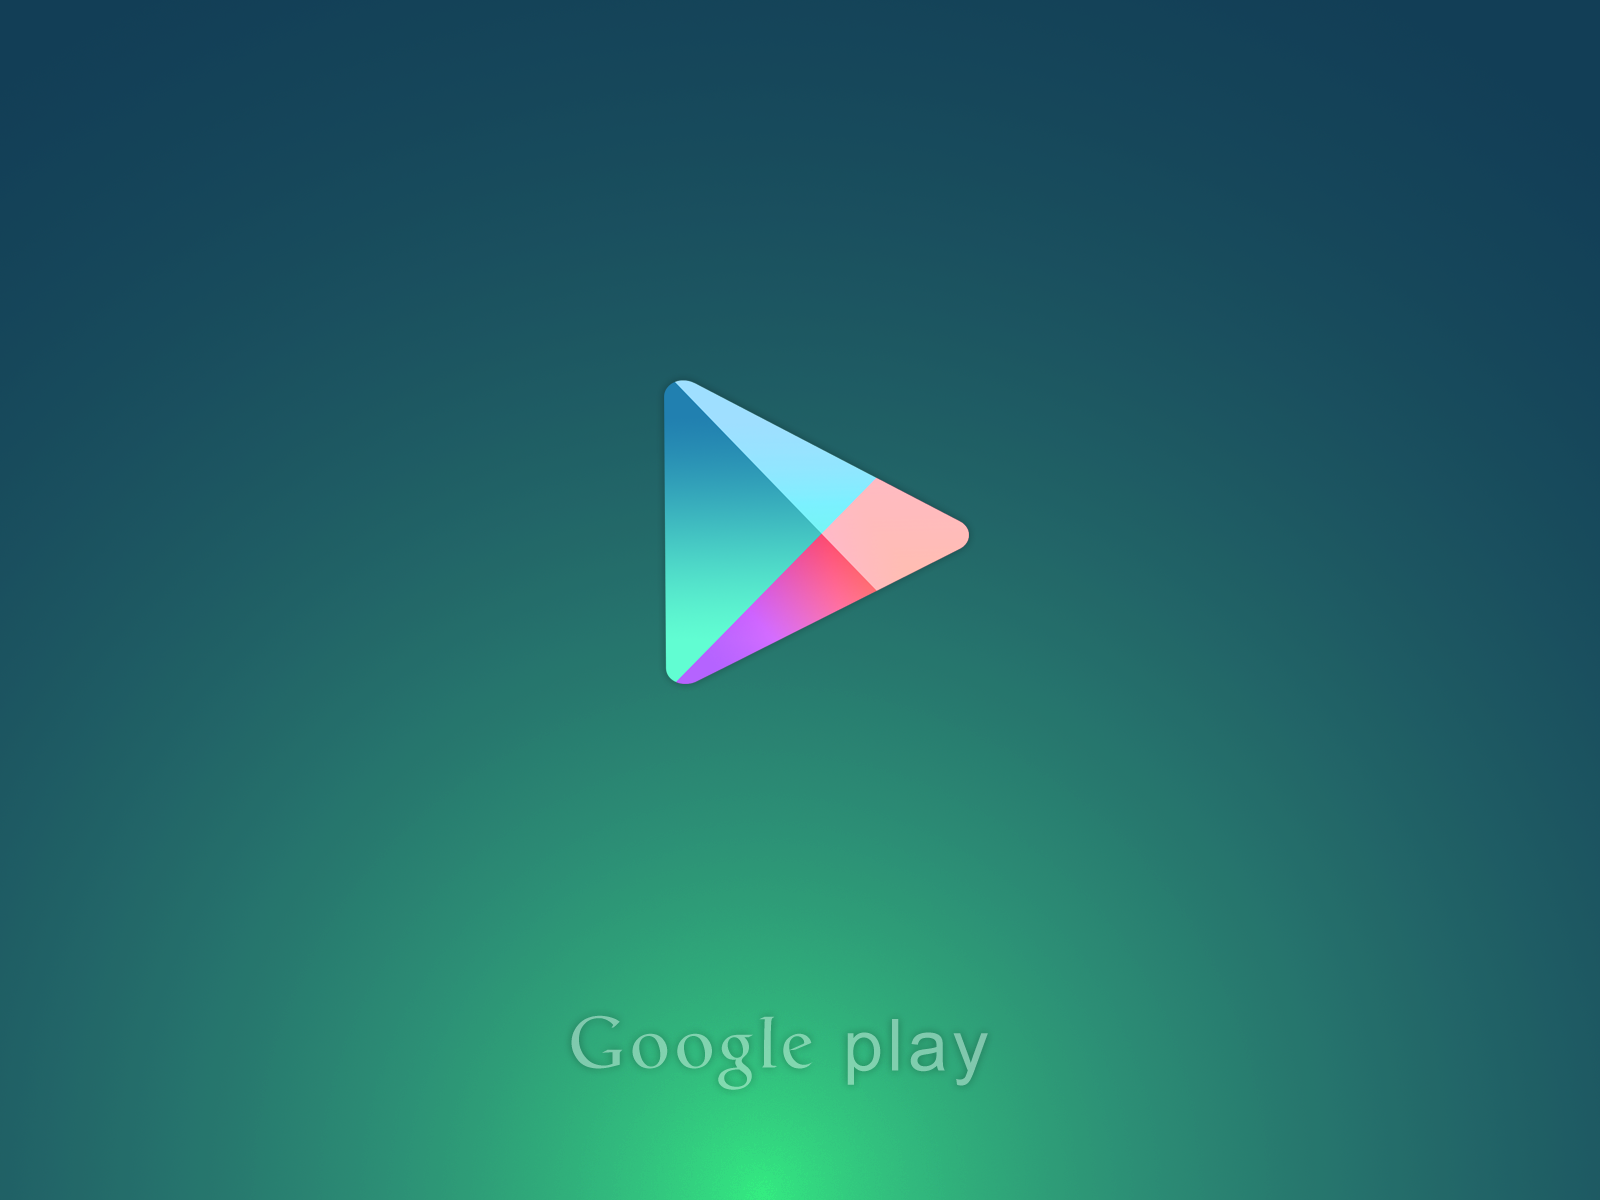 Google Play Wallpapers